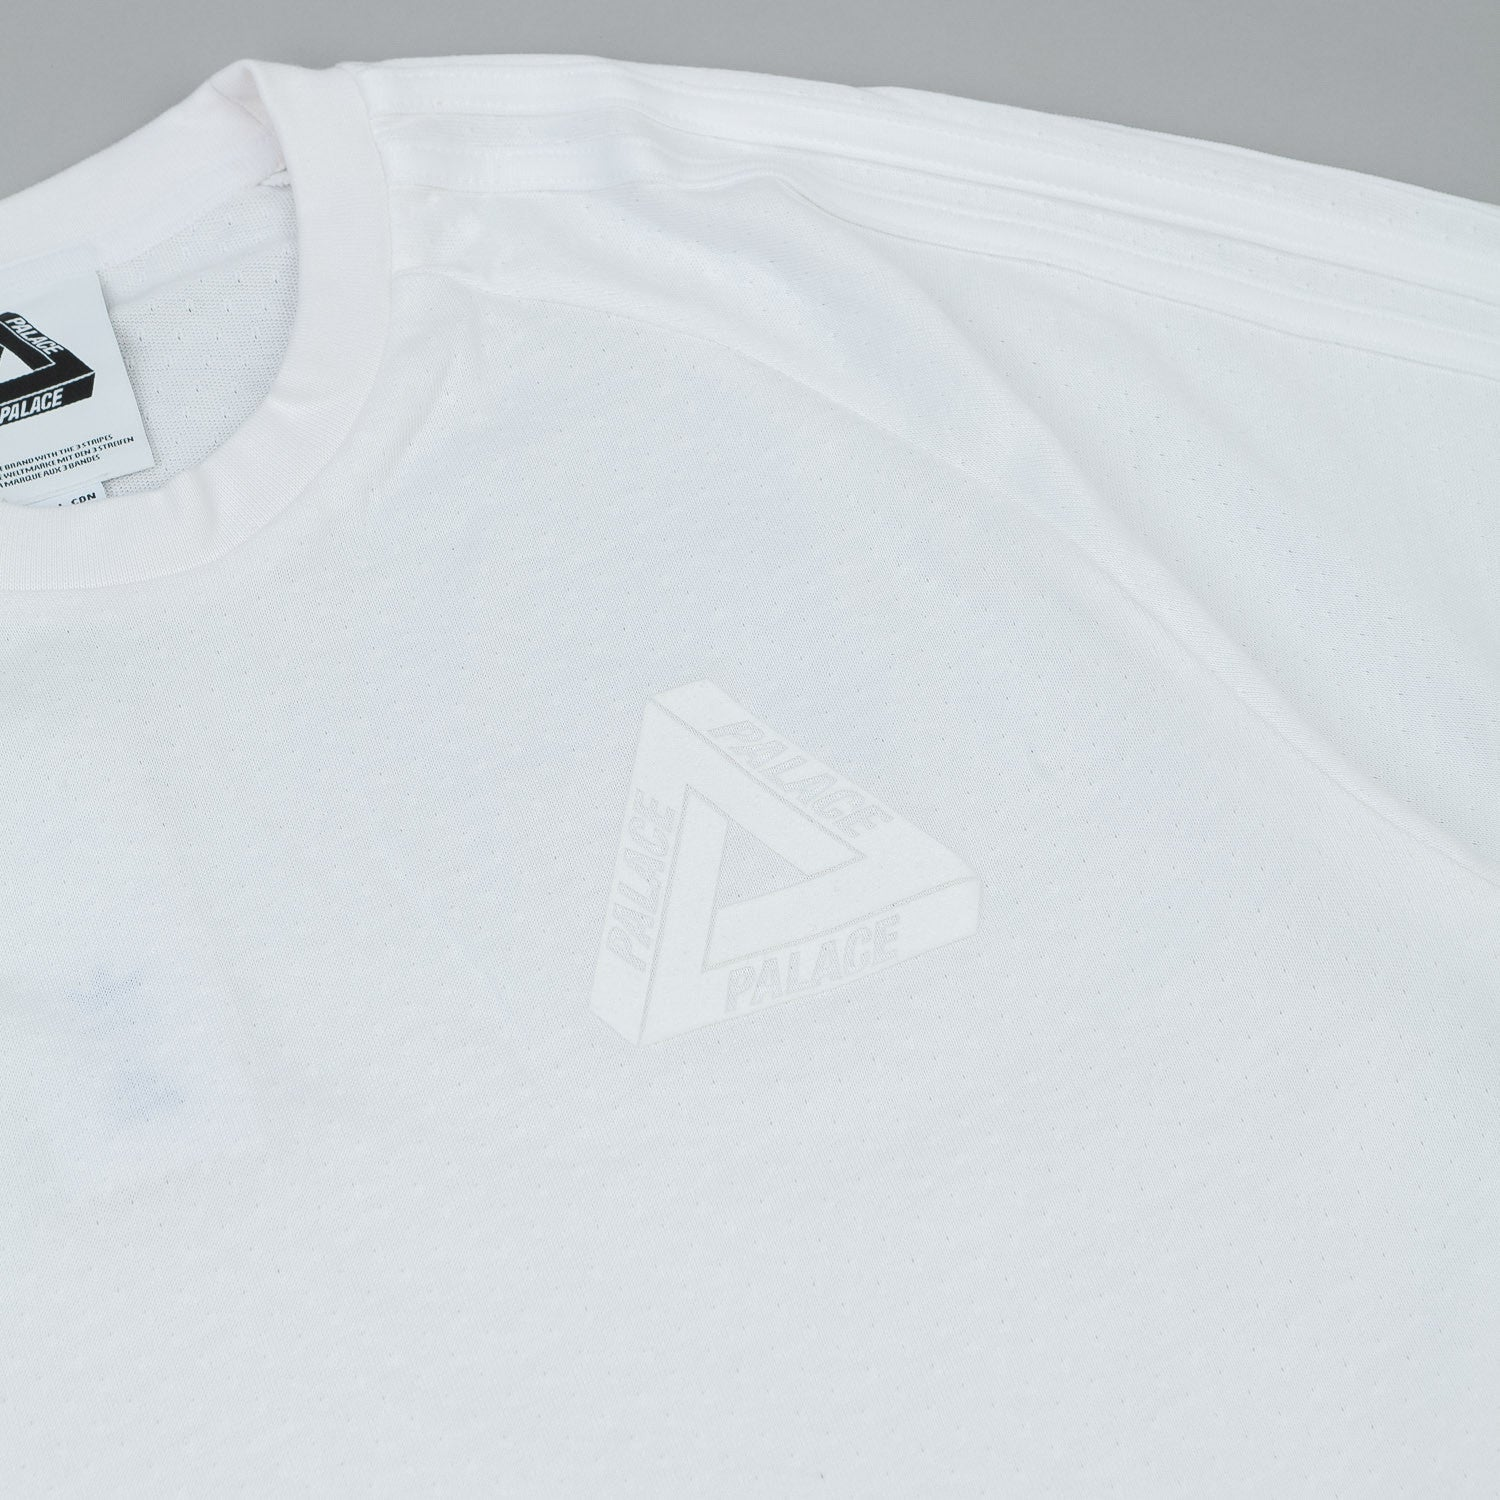 Adidas x Palace T-Shirt White